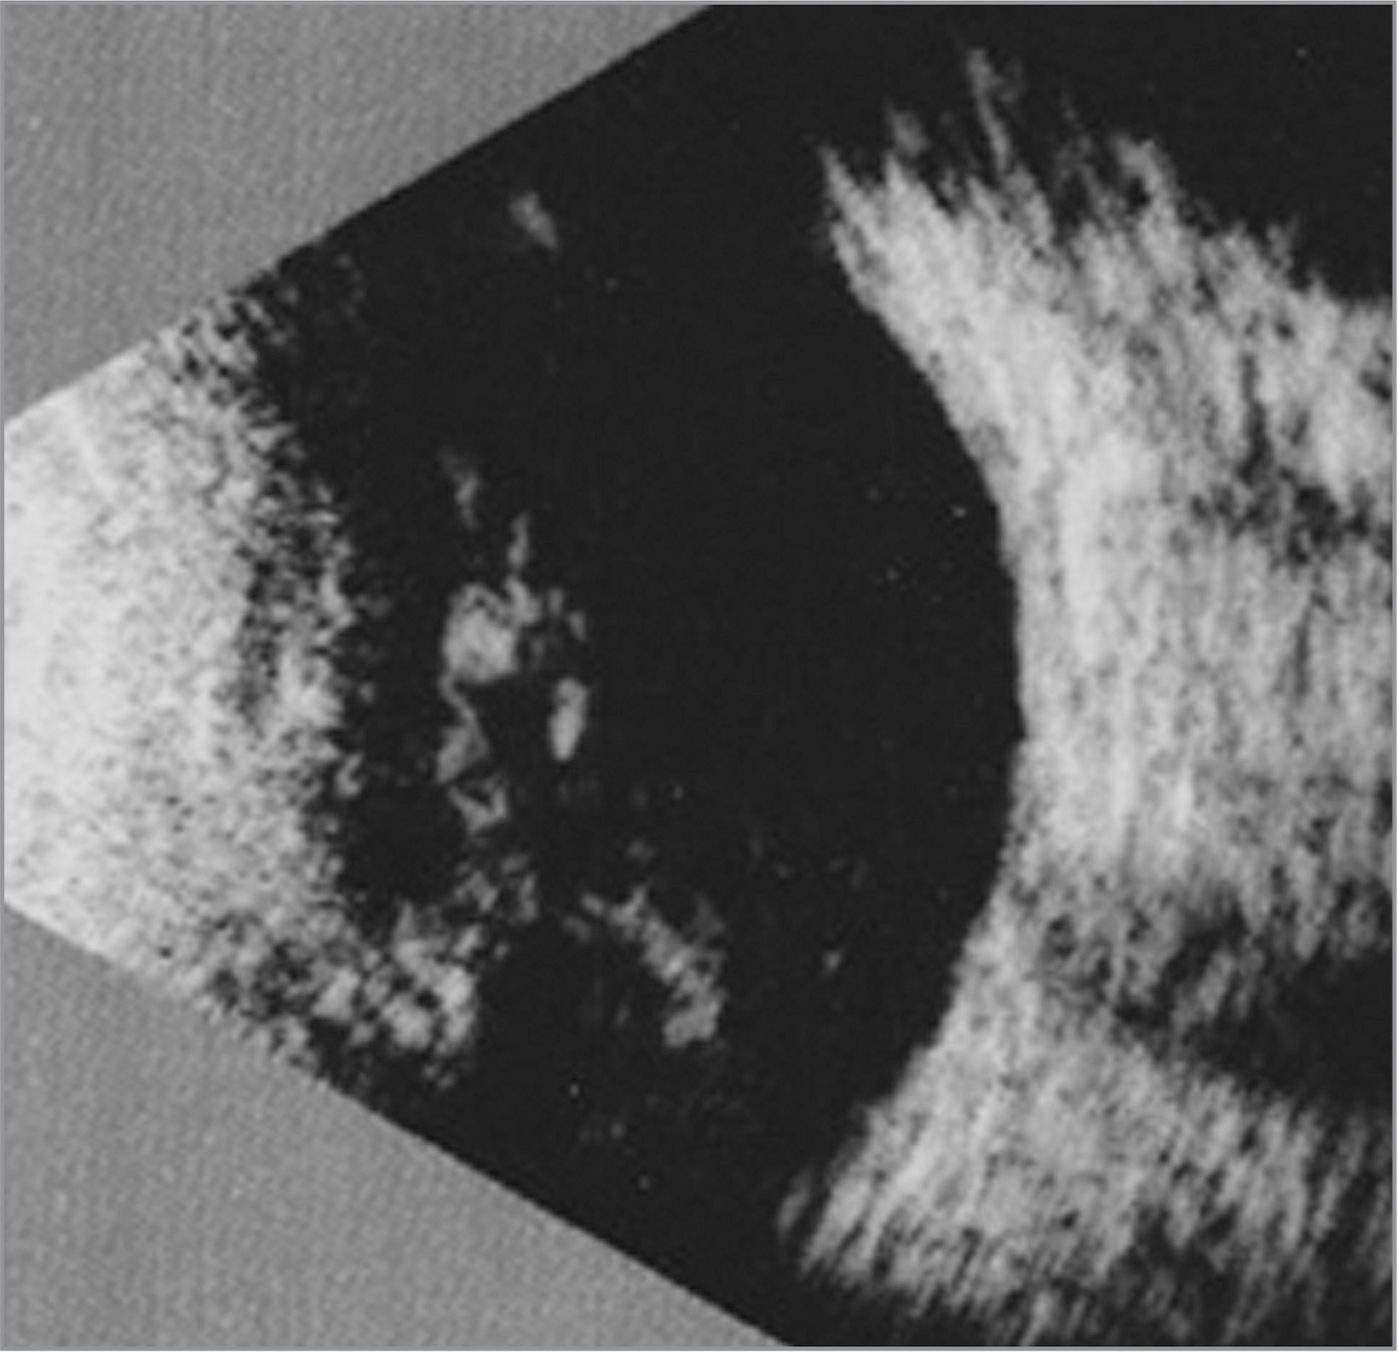 Ultrasound echography photograph of the patient's right eye obtained at the initial examination. Vitreous hemorrhage was observed; however, no obvious retinal detachment was detected.